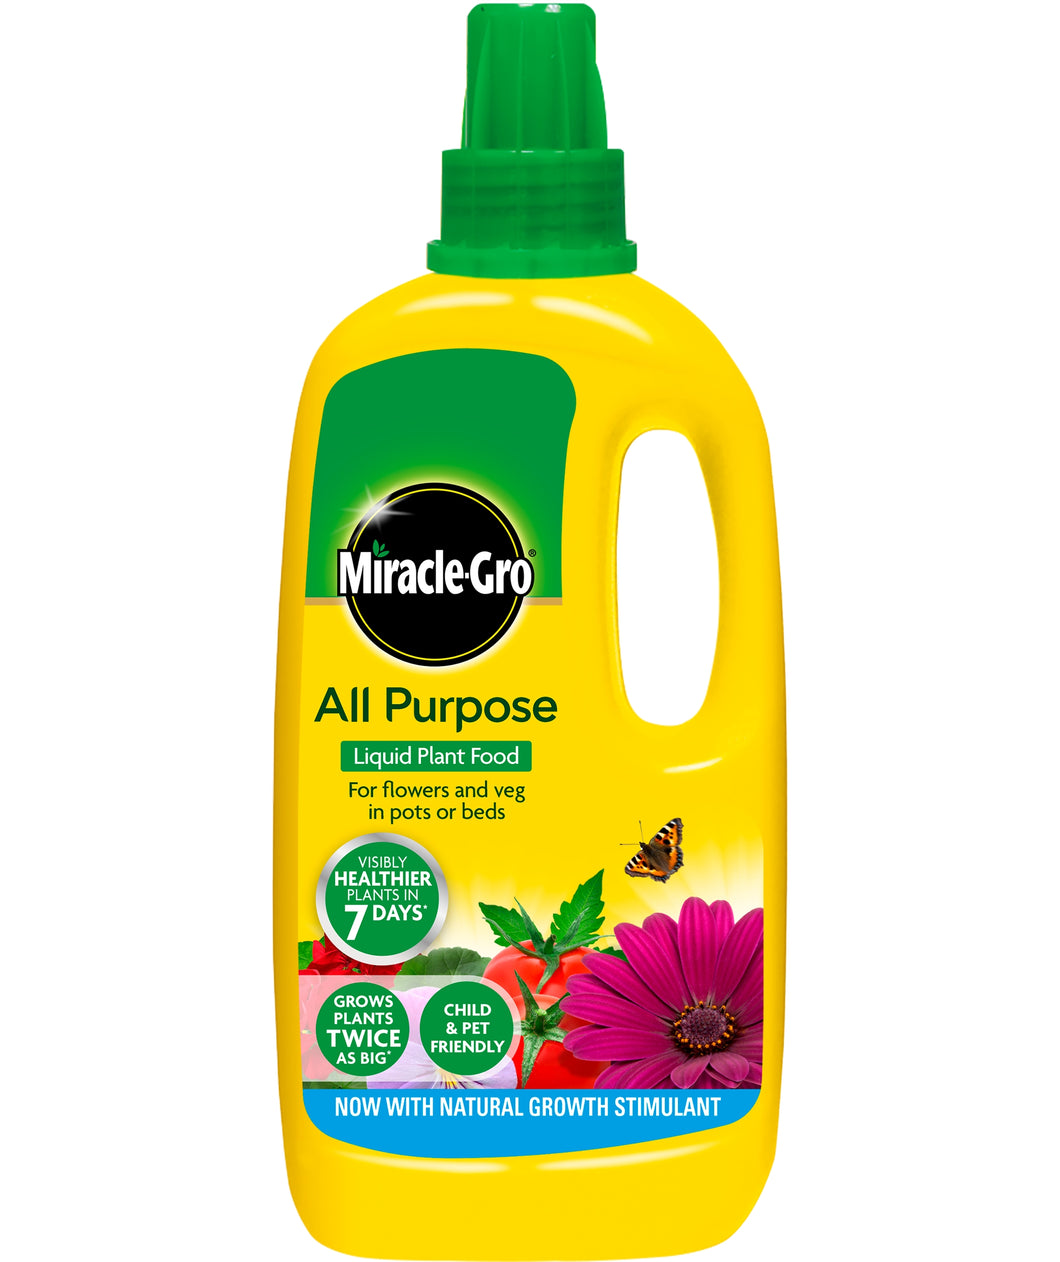 Miracle-Gro All Purpose Plant Food Liquid 1L